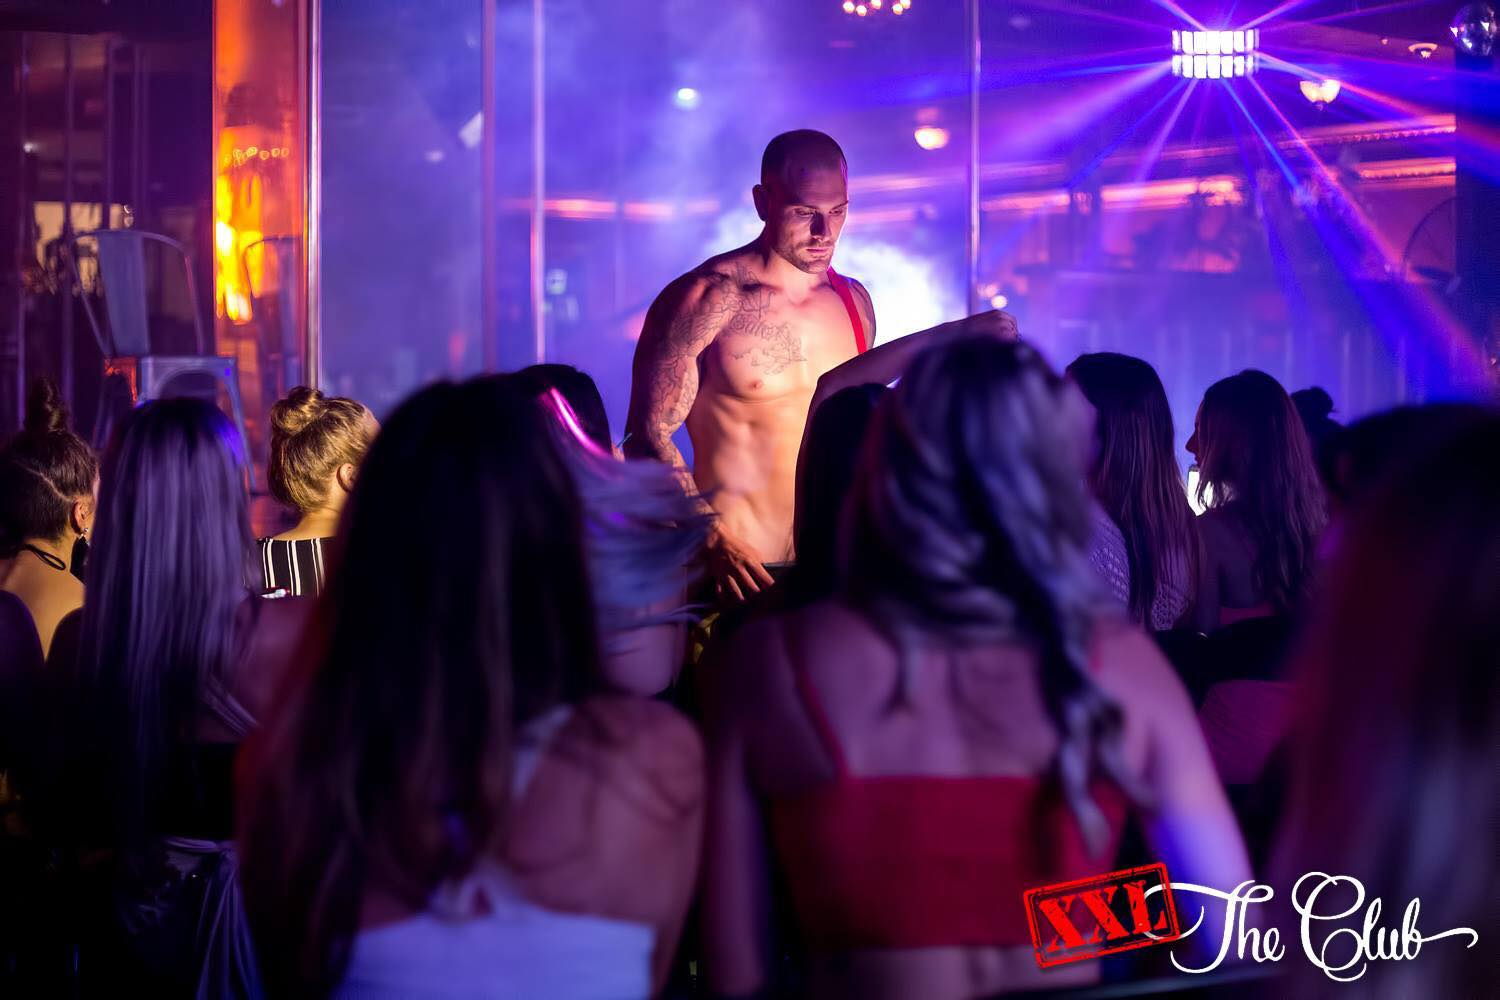 affordable hens night party packages in XXL The Club Sydney